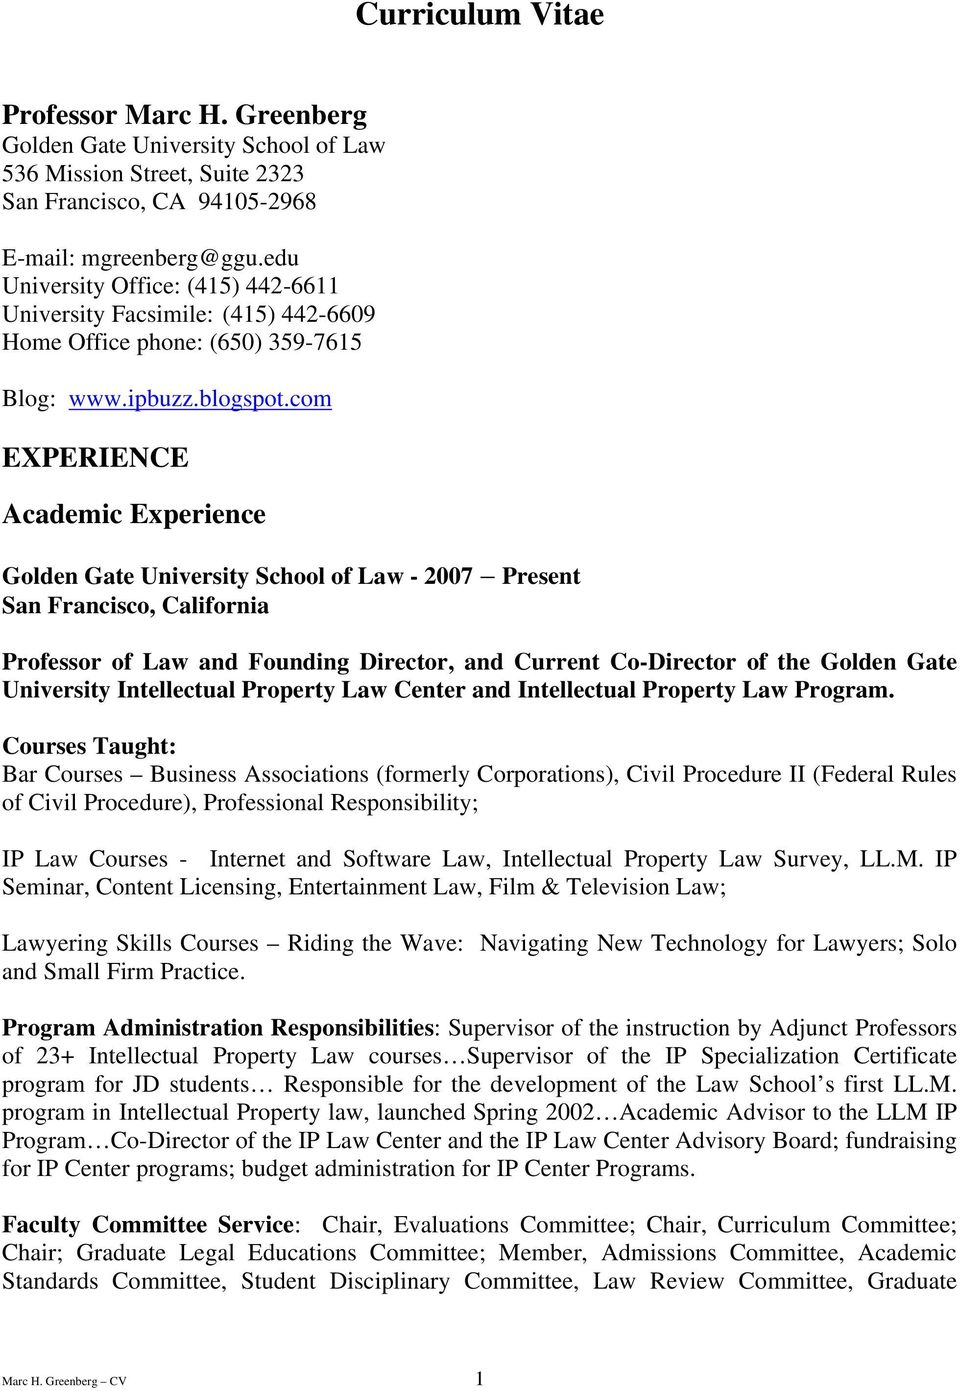 com EXPERIENCE Academic Experience Golden Gate University School of Law - 2007 Present San Francisco, California Professor of Law and Founding Director, and Current Co-Director of the Golden Gate